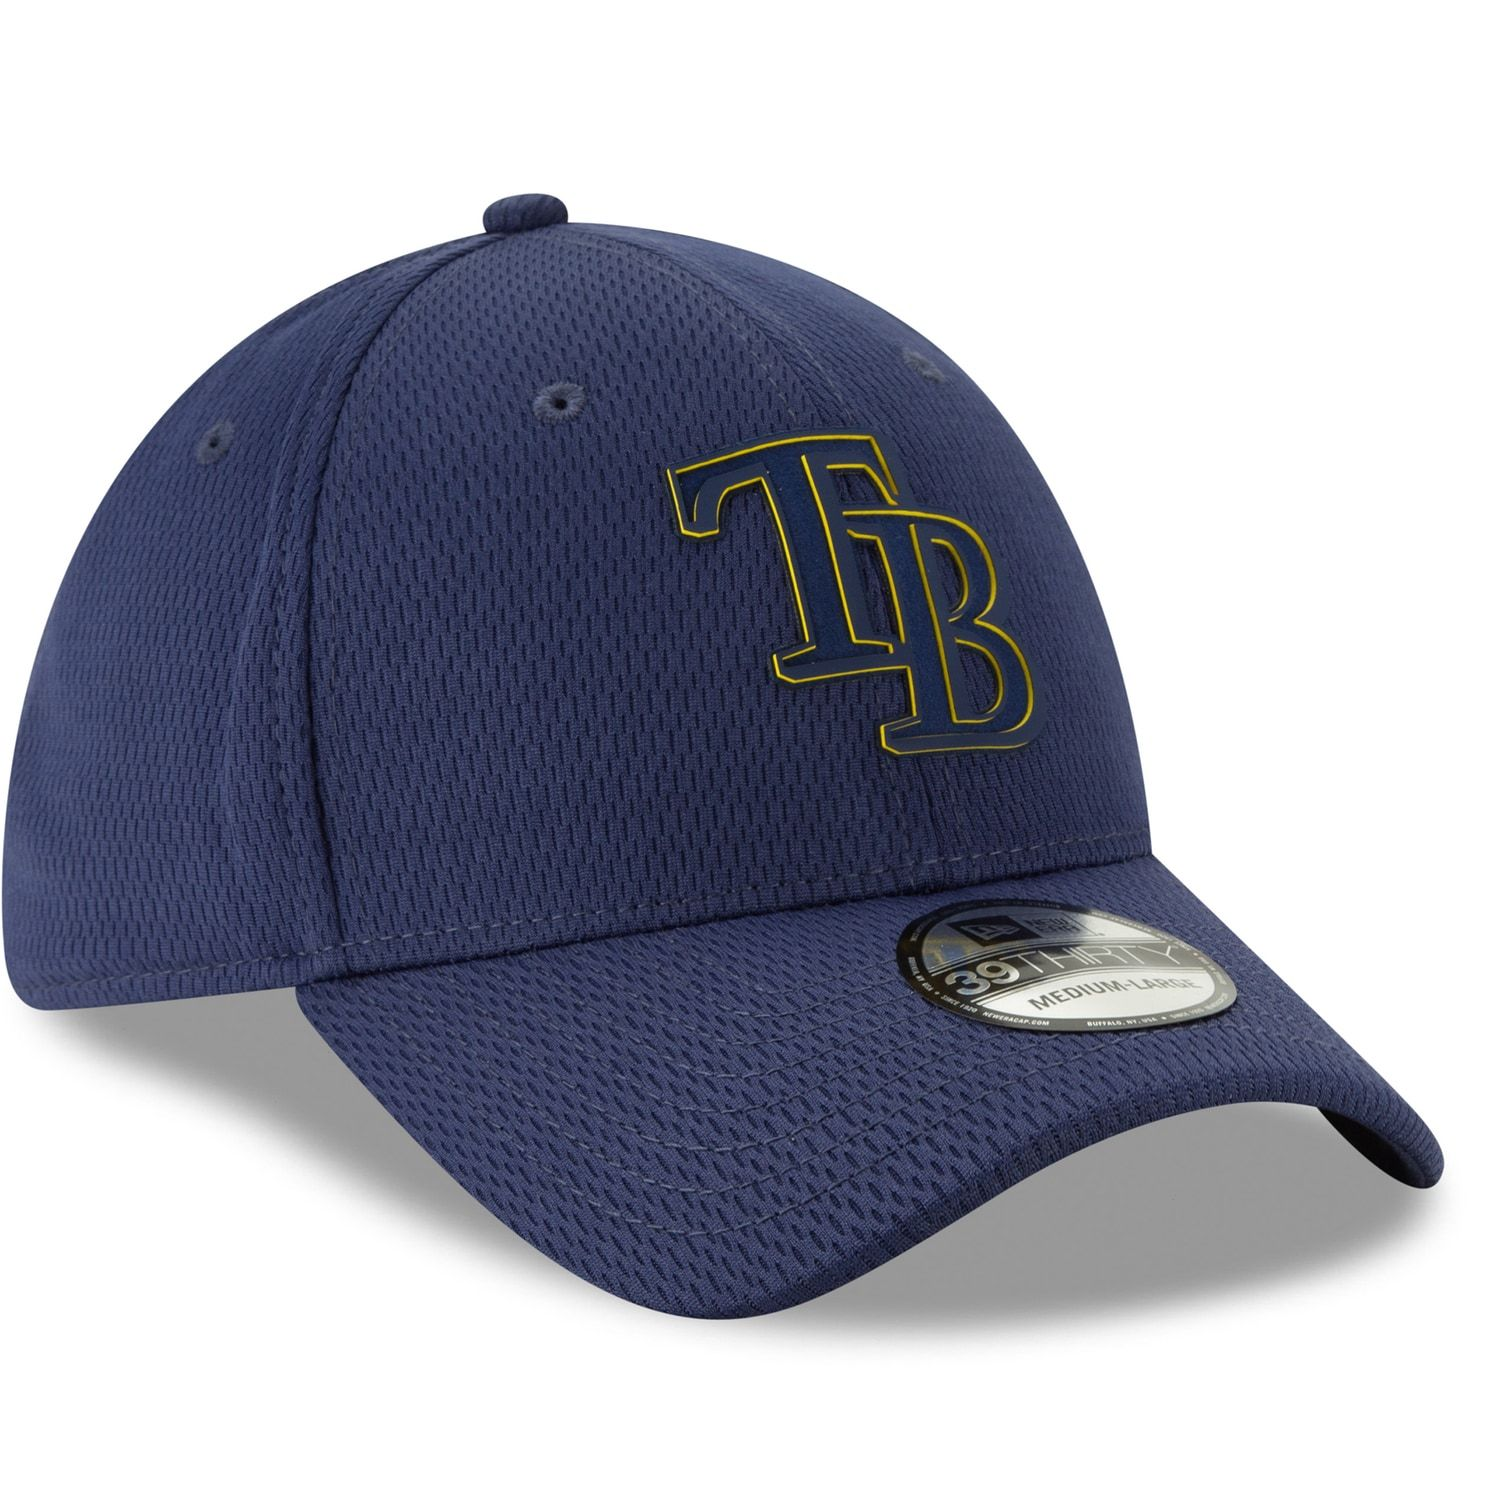 info for 2e4d0 0c0e6 39Thirty Clubhouse Tampa Bay Rays Team Cap  Affiliate  Tampa,  Clubhouse,   Bay,  Cap